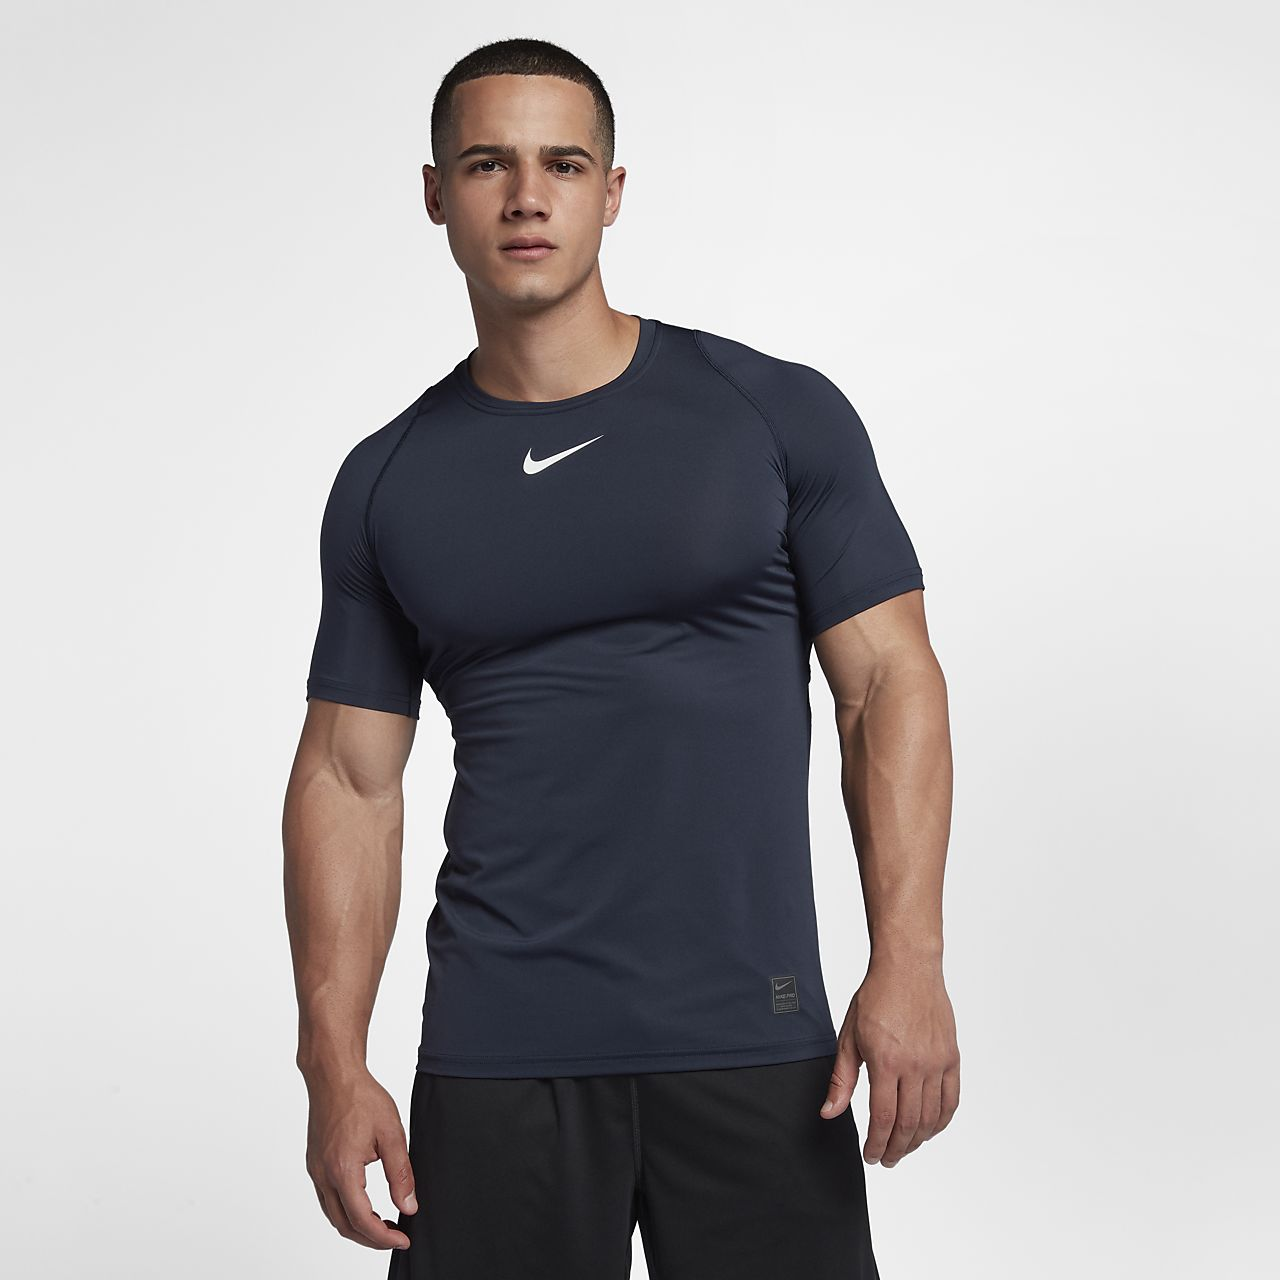 60864d6e852c Nike Pro Men s Training Top. Nike.com